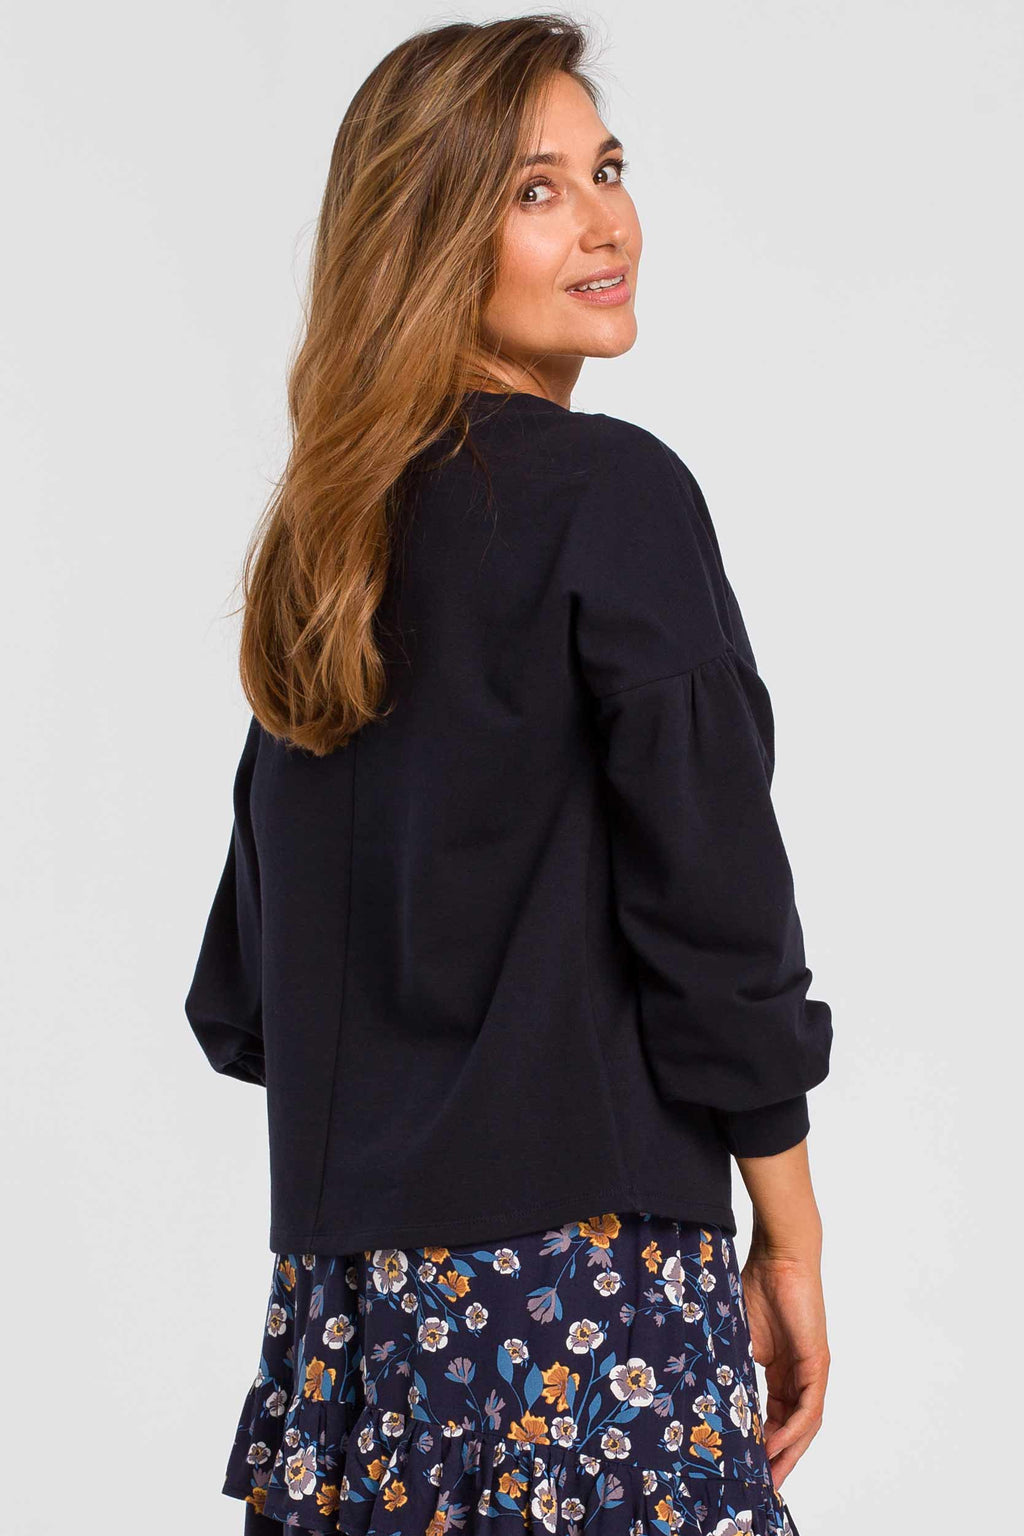 Blue Bishop Sleeve Cotton Top - So Chic Boutique